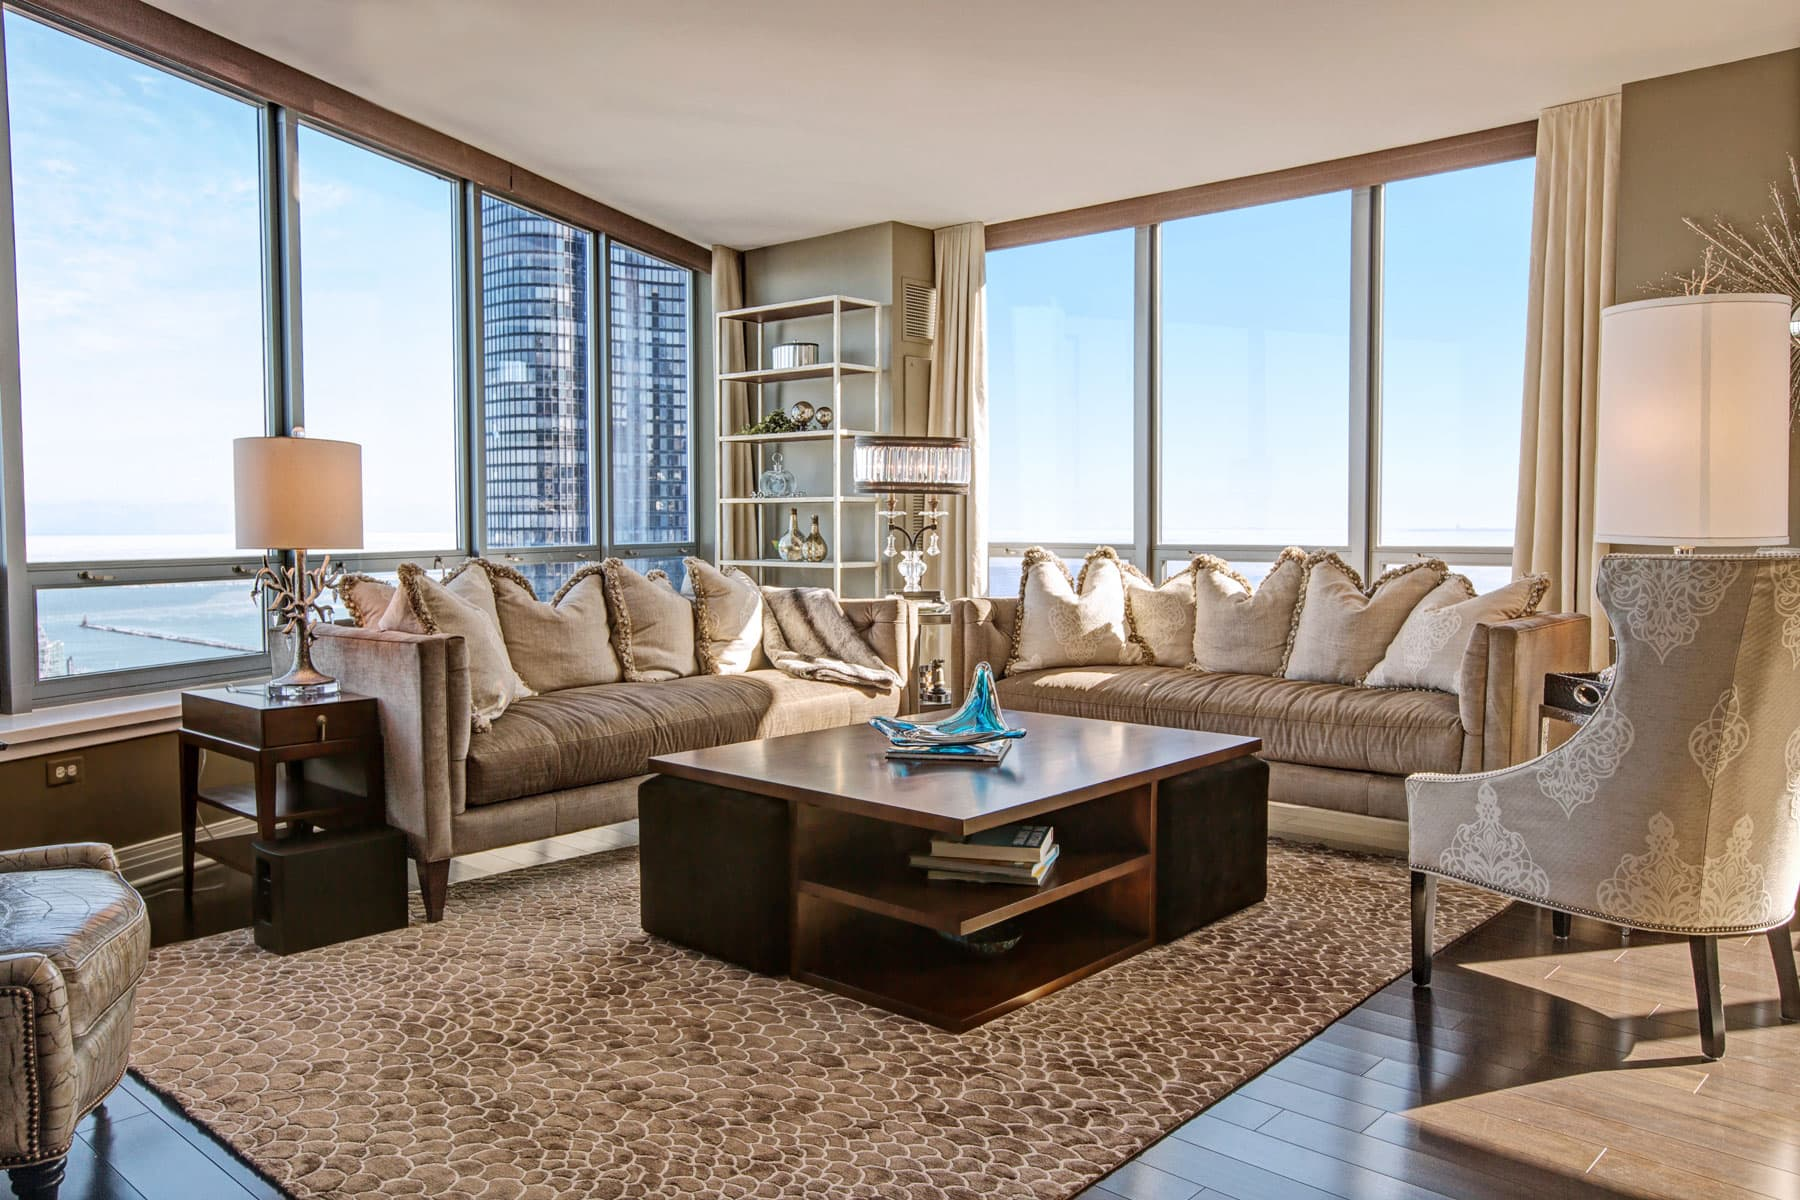 Luxury chicago condo interior design apartment interior for New york condo interior design